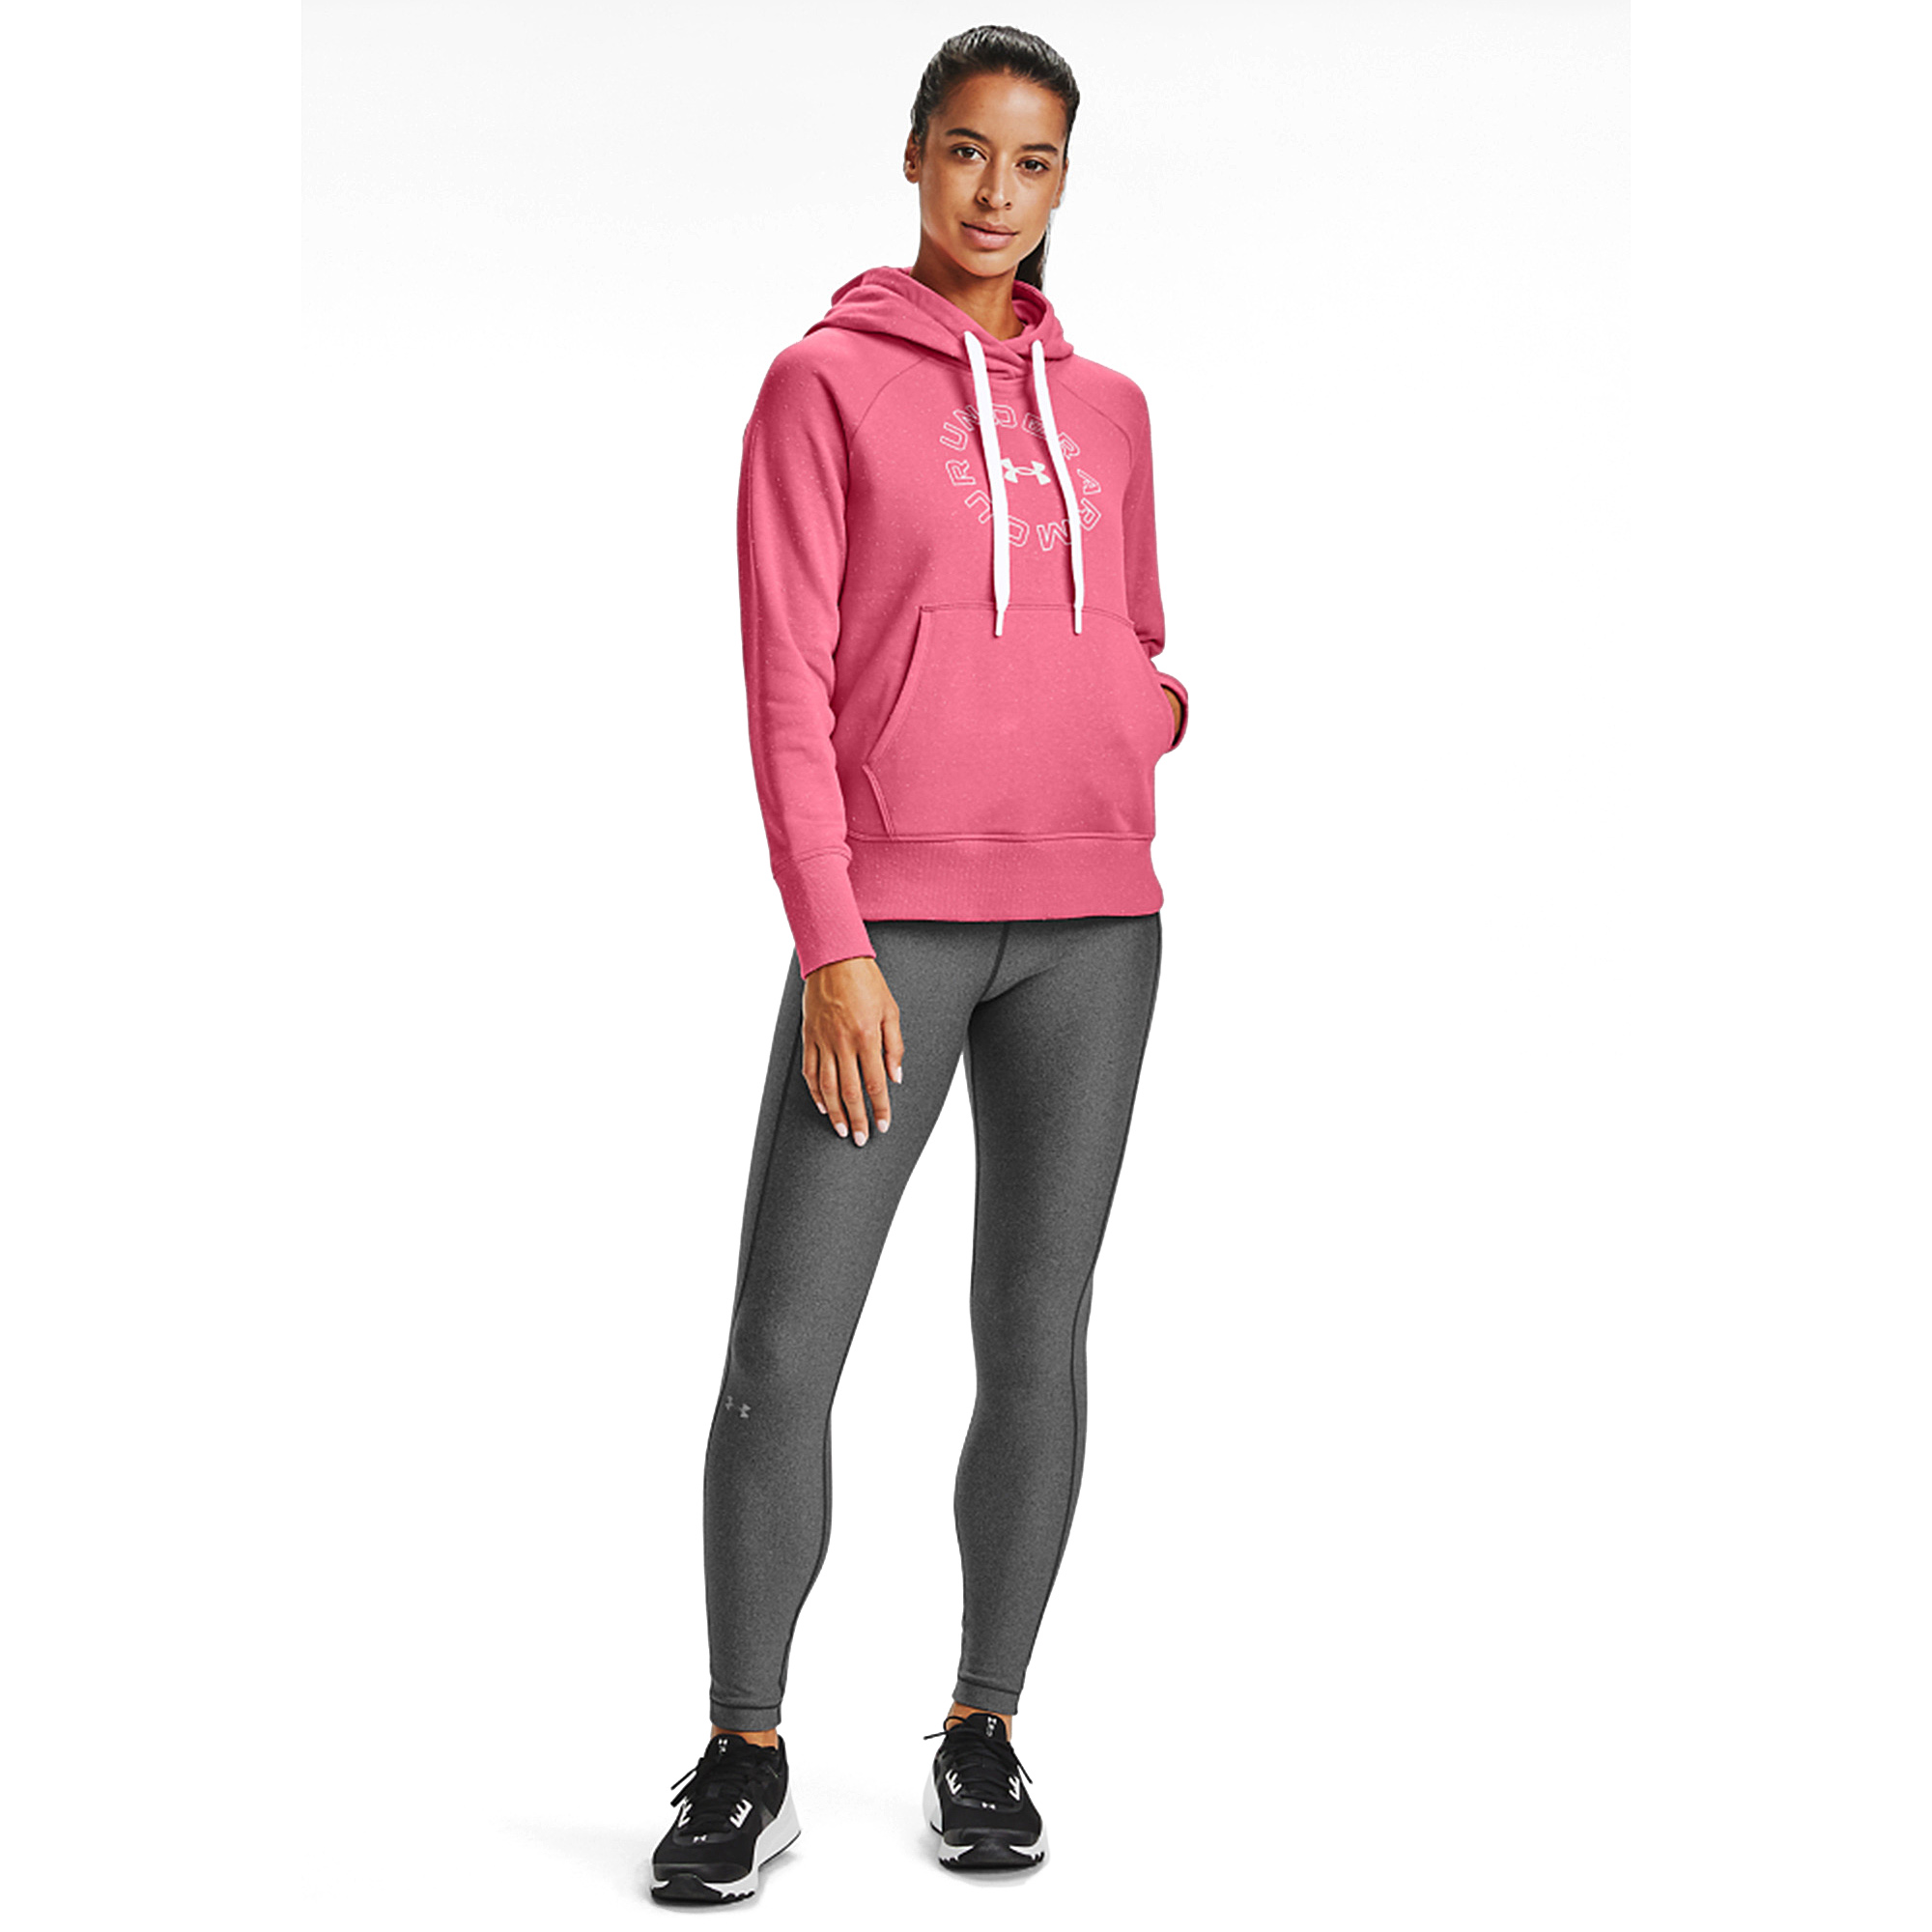 POLERON DE MUJER UNDER ARMOUR RIVAL FLEECE METALLIC ROSADO